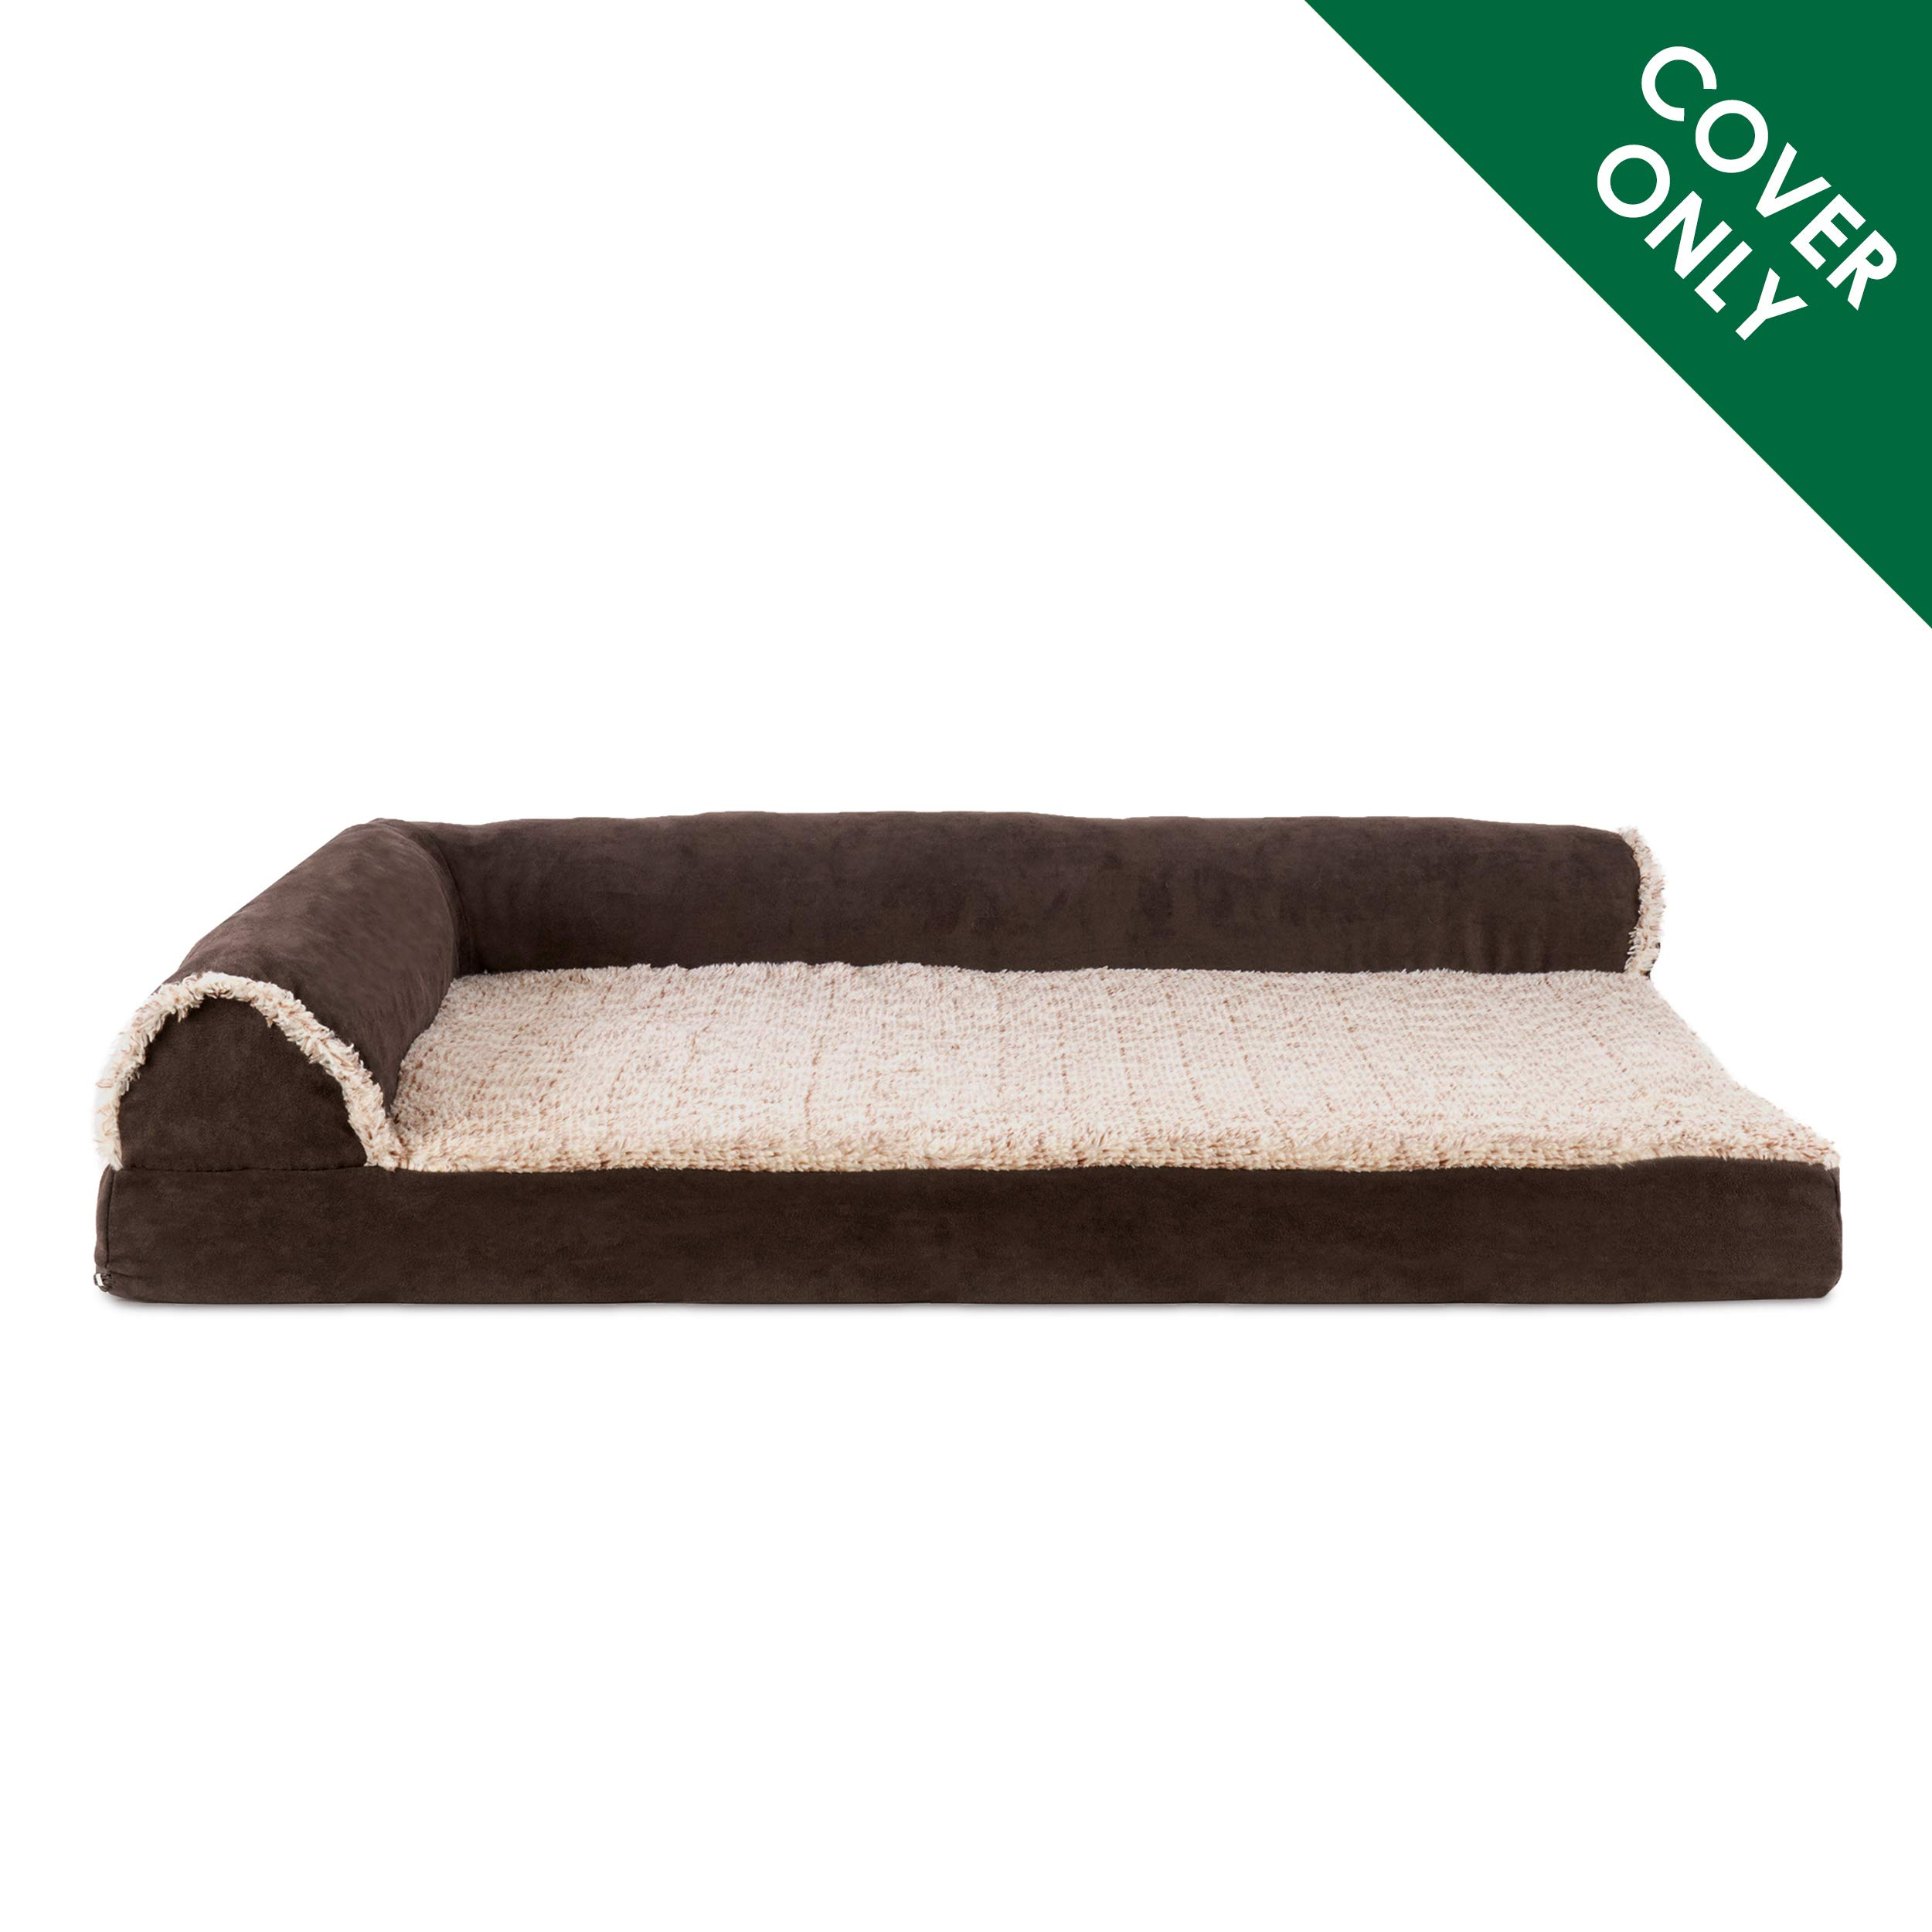 Furhaven Pet Dog Bed | Two-Tone Plush Faux Fur & Suede L Shaped Chaise Lounge Living Room Corner Couch Pet Bed Replacement Cover for Dogs & Cats, Espresso, Jumbo Plus by Furhaven